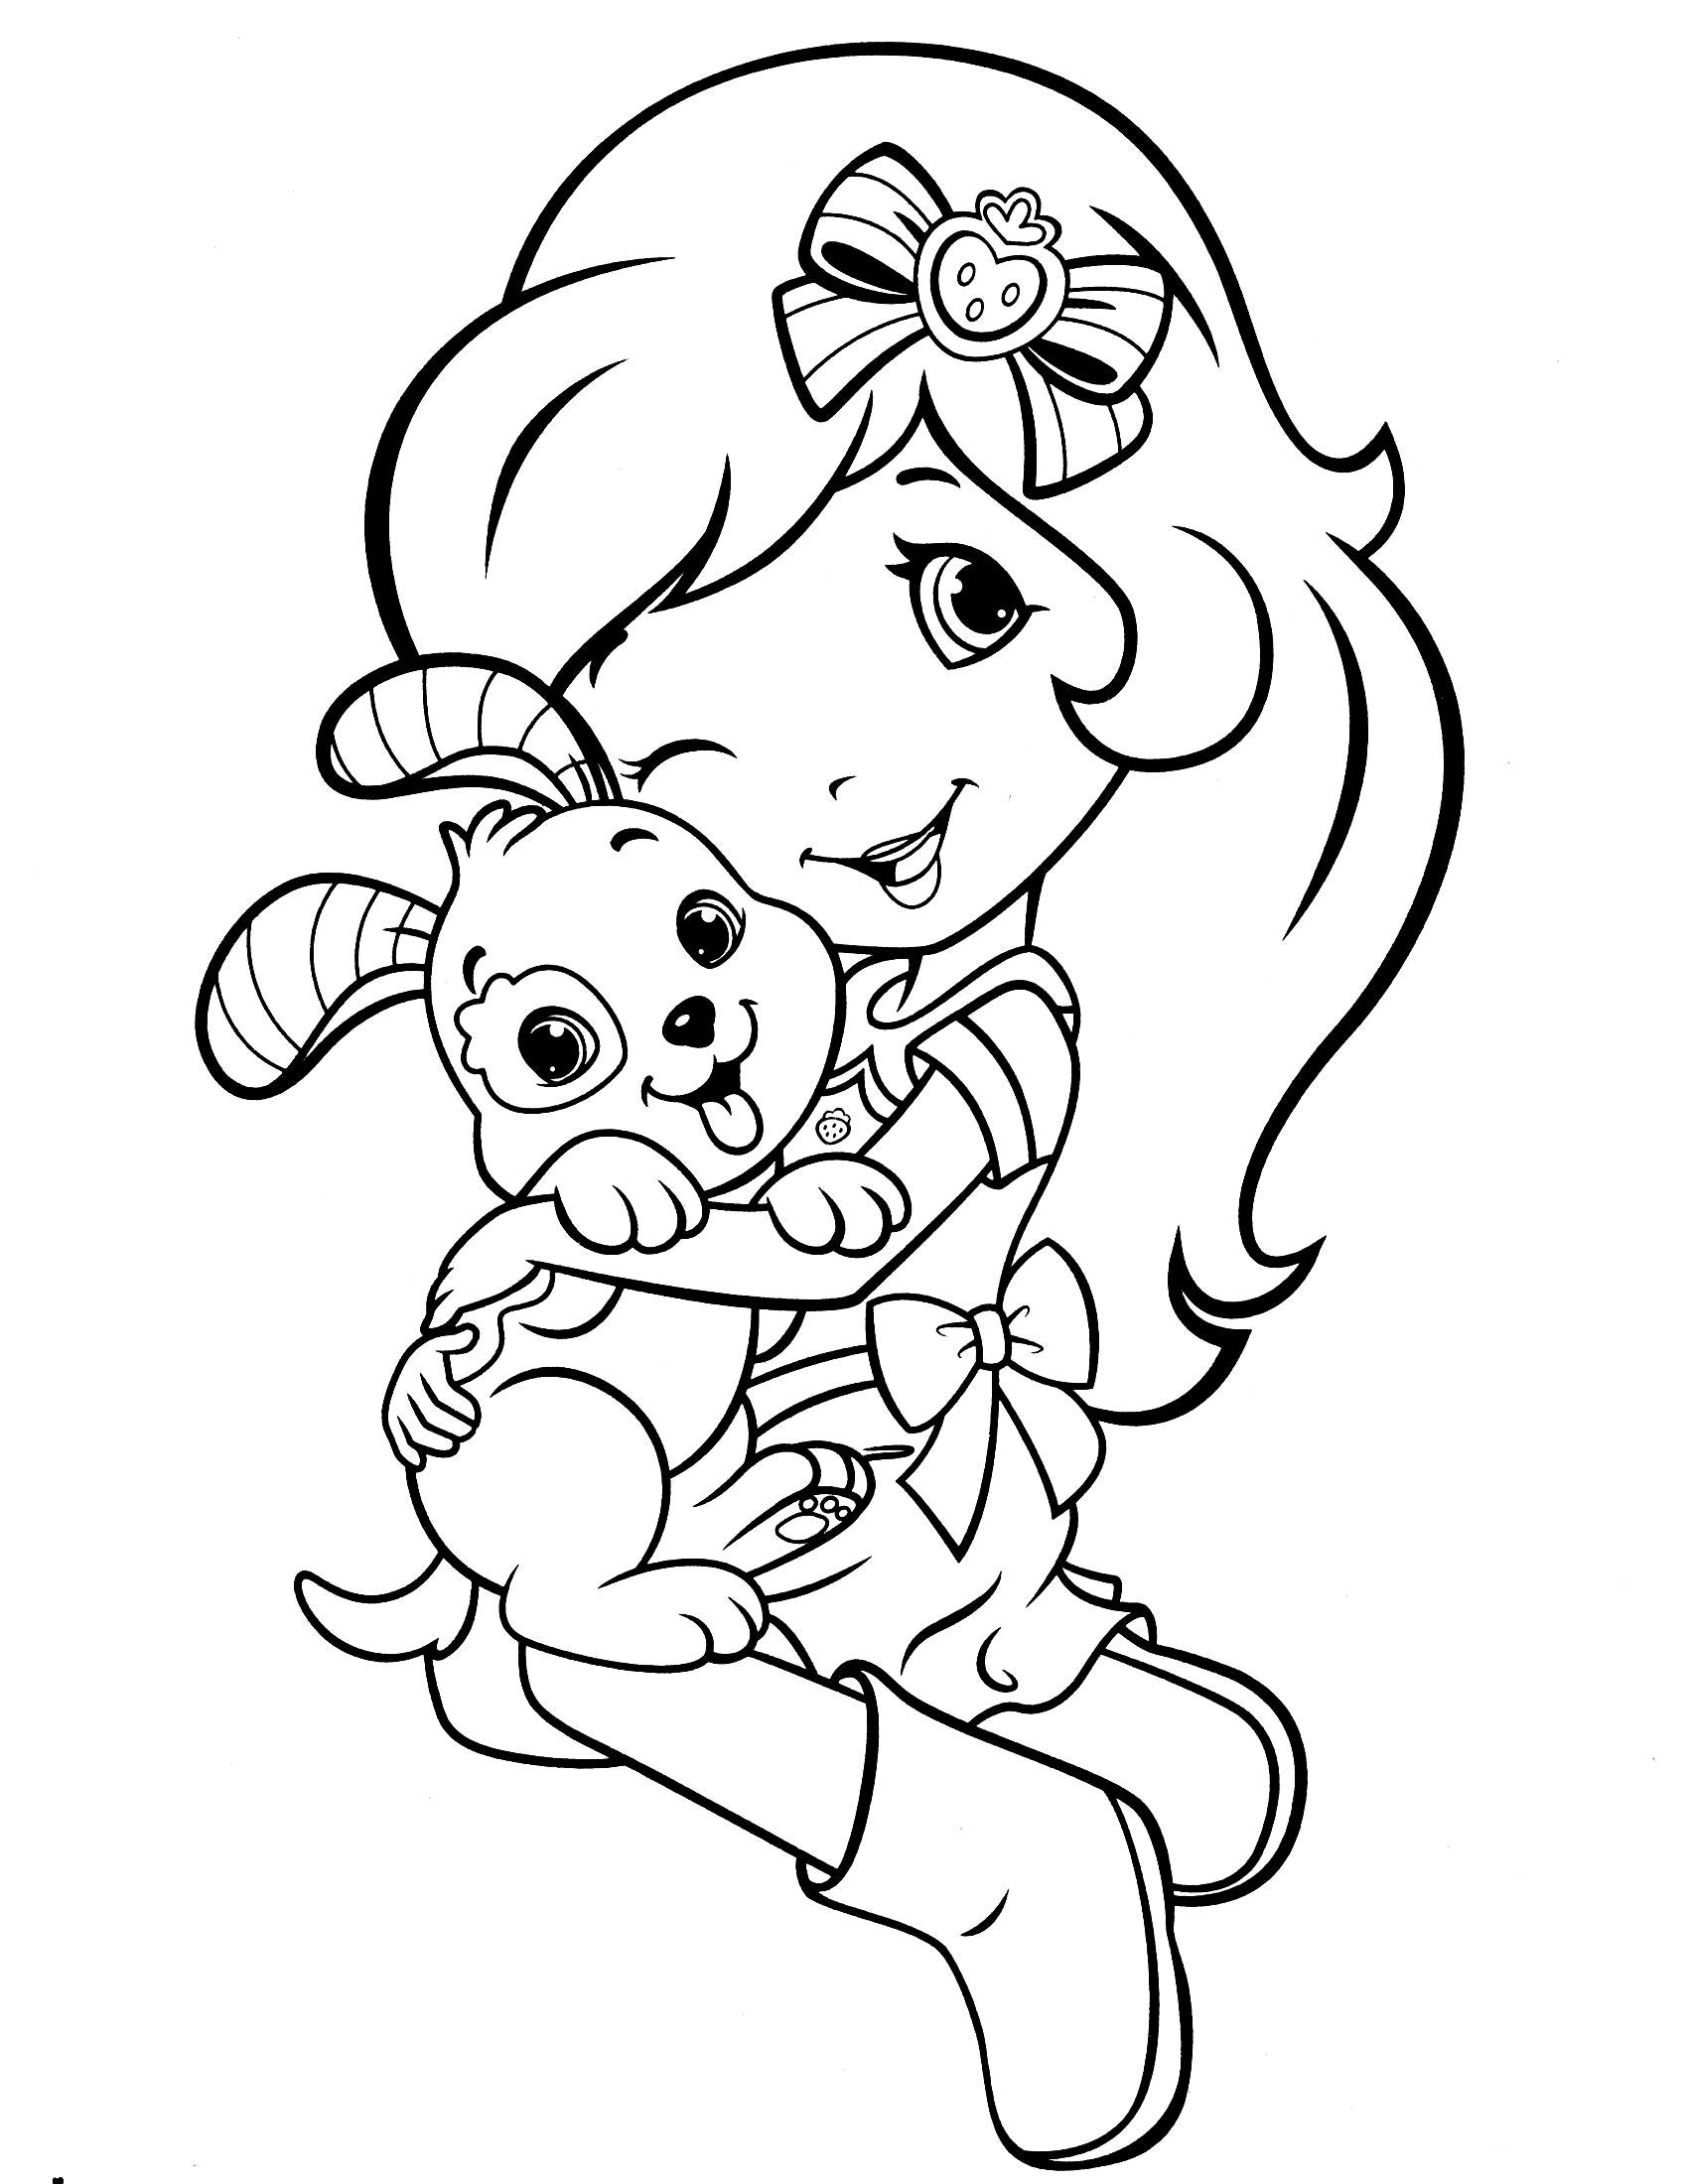 Strawberry Shortcake Coloring Pages / Cool coloring pages